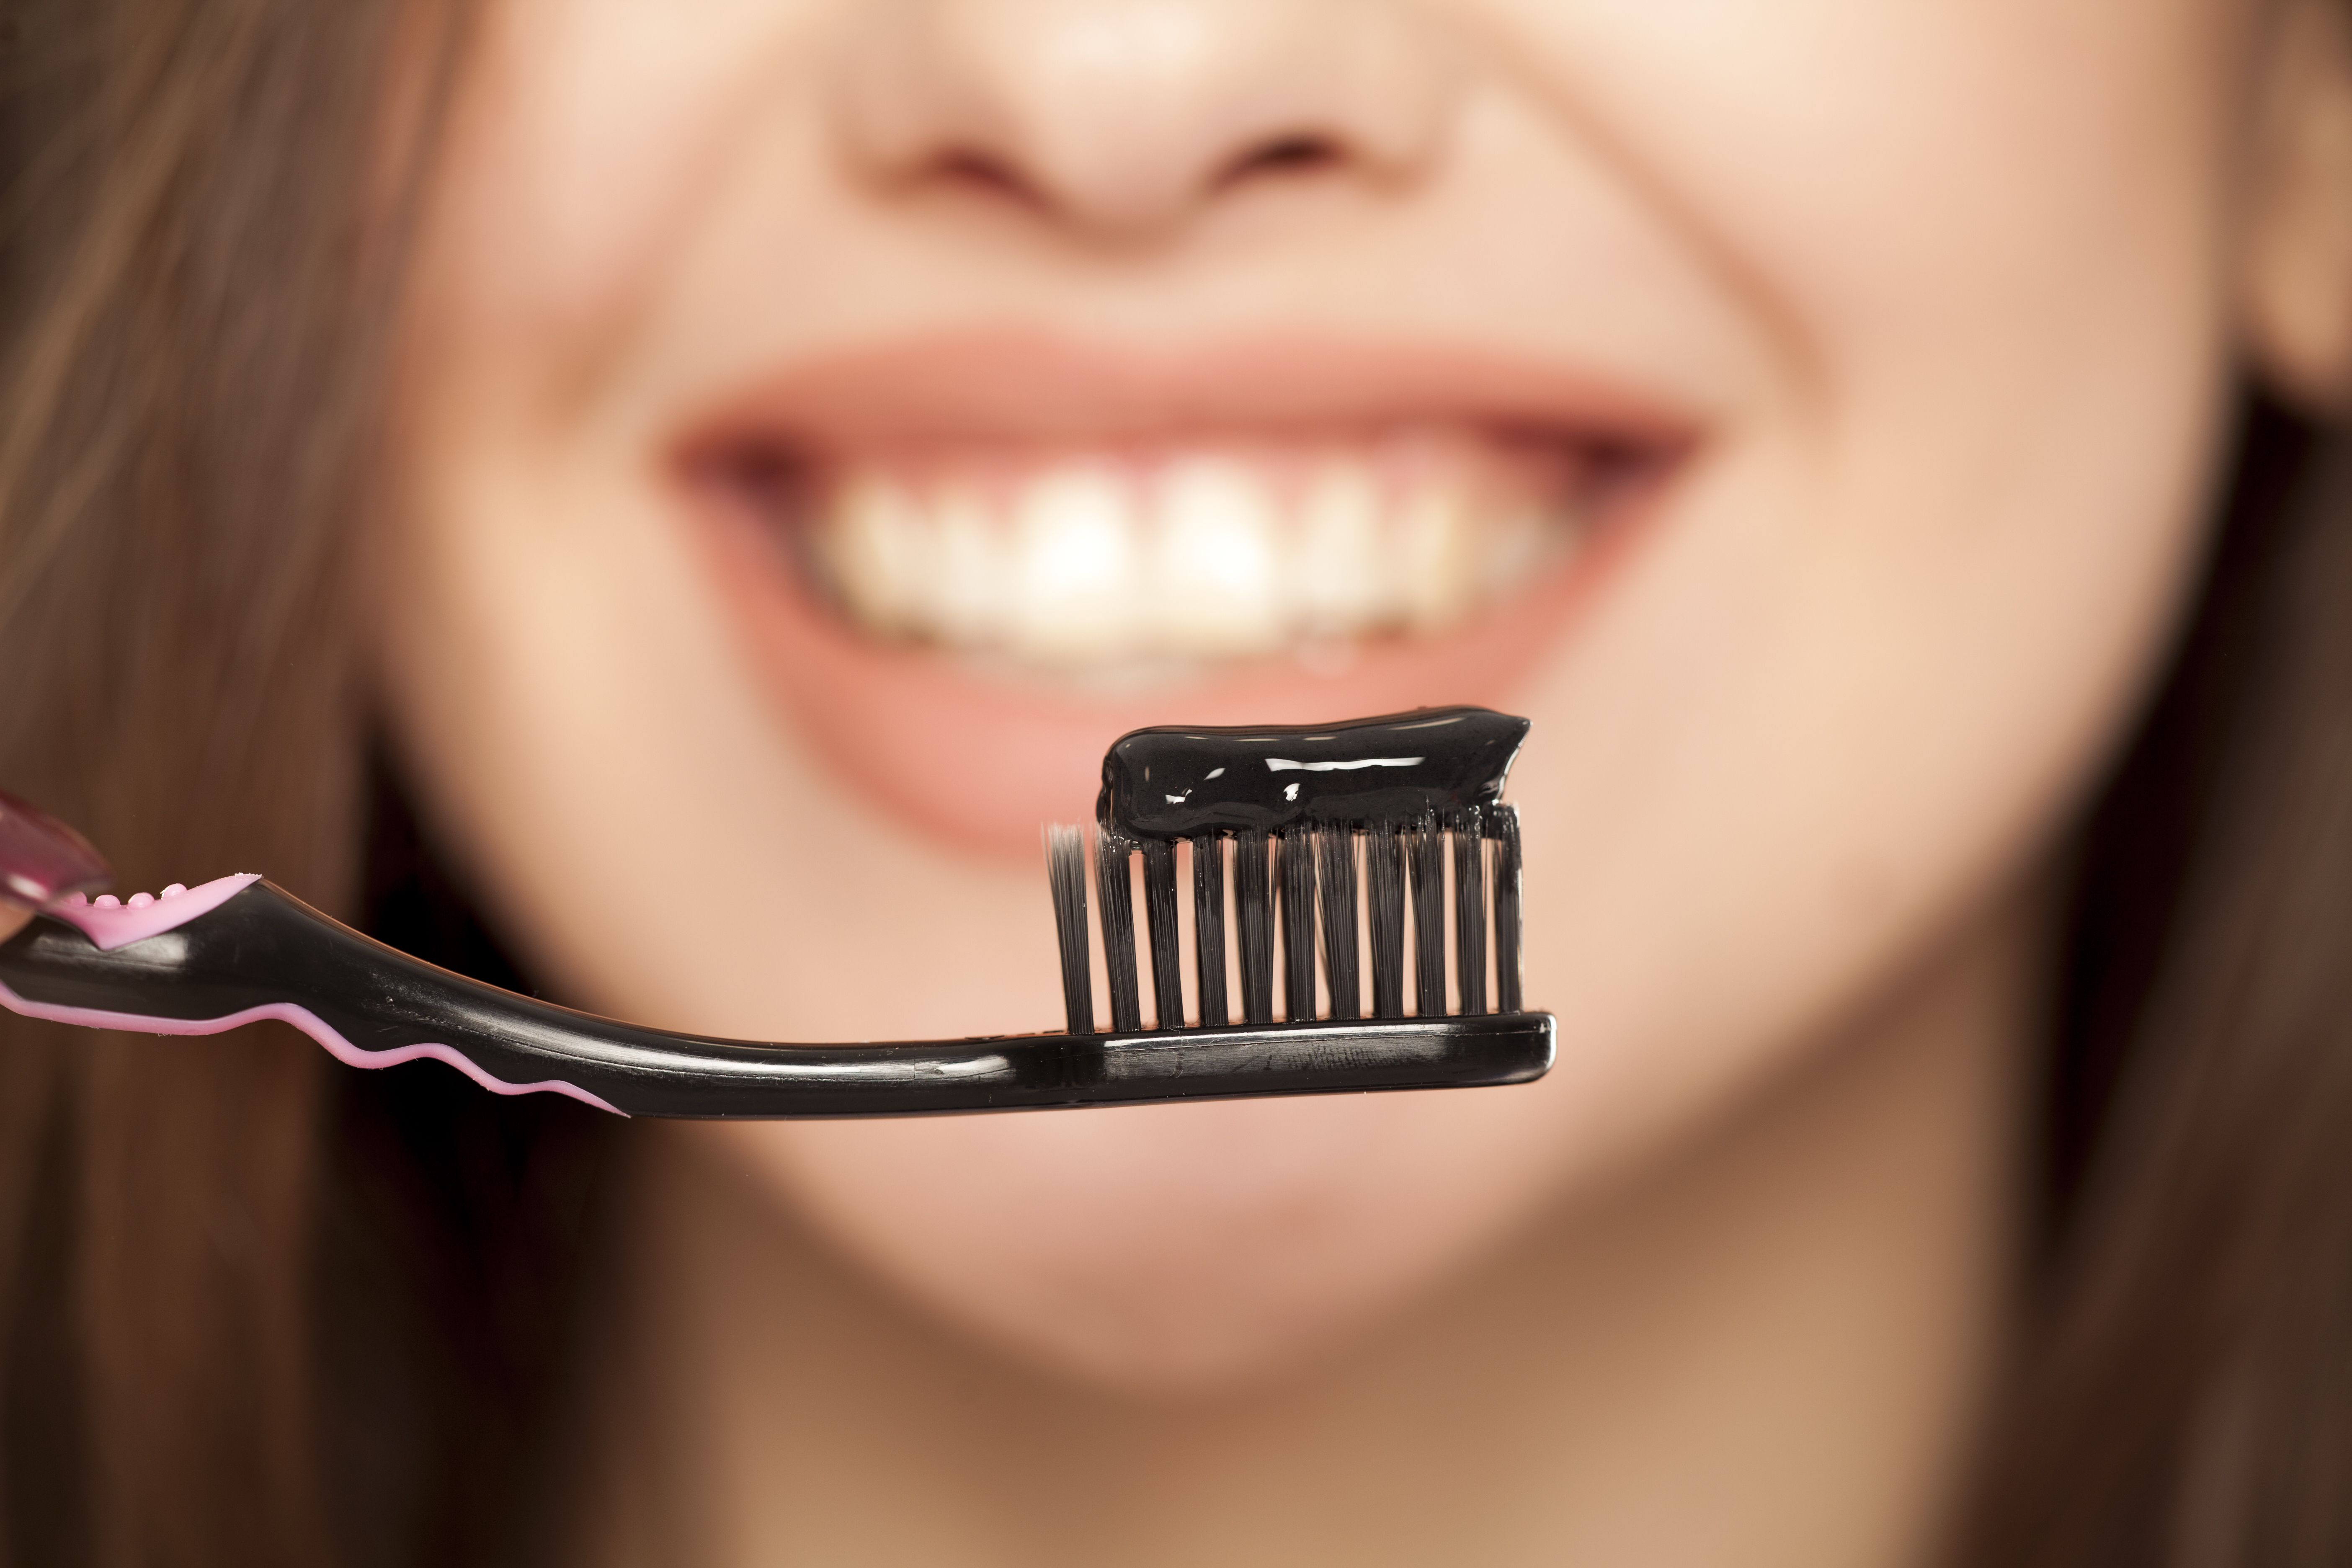 Does Charcoal Teeth Whitening Work?